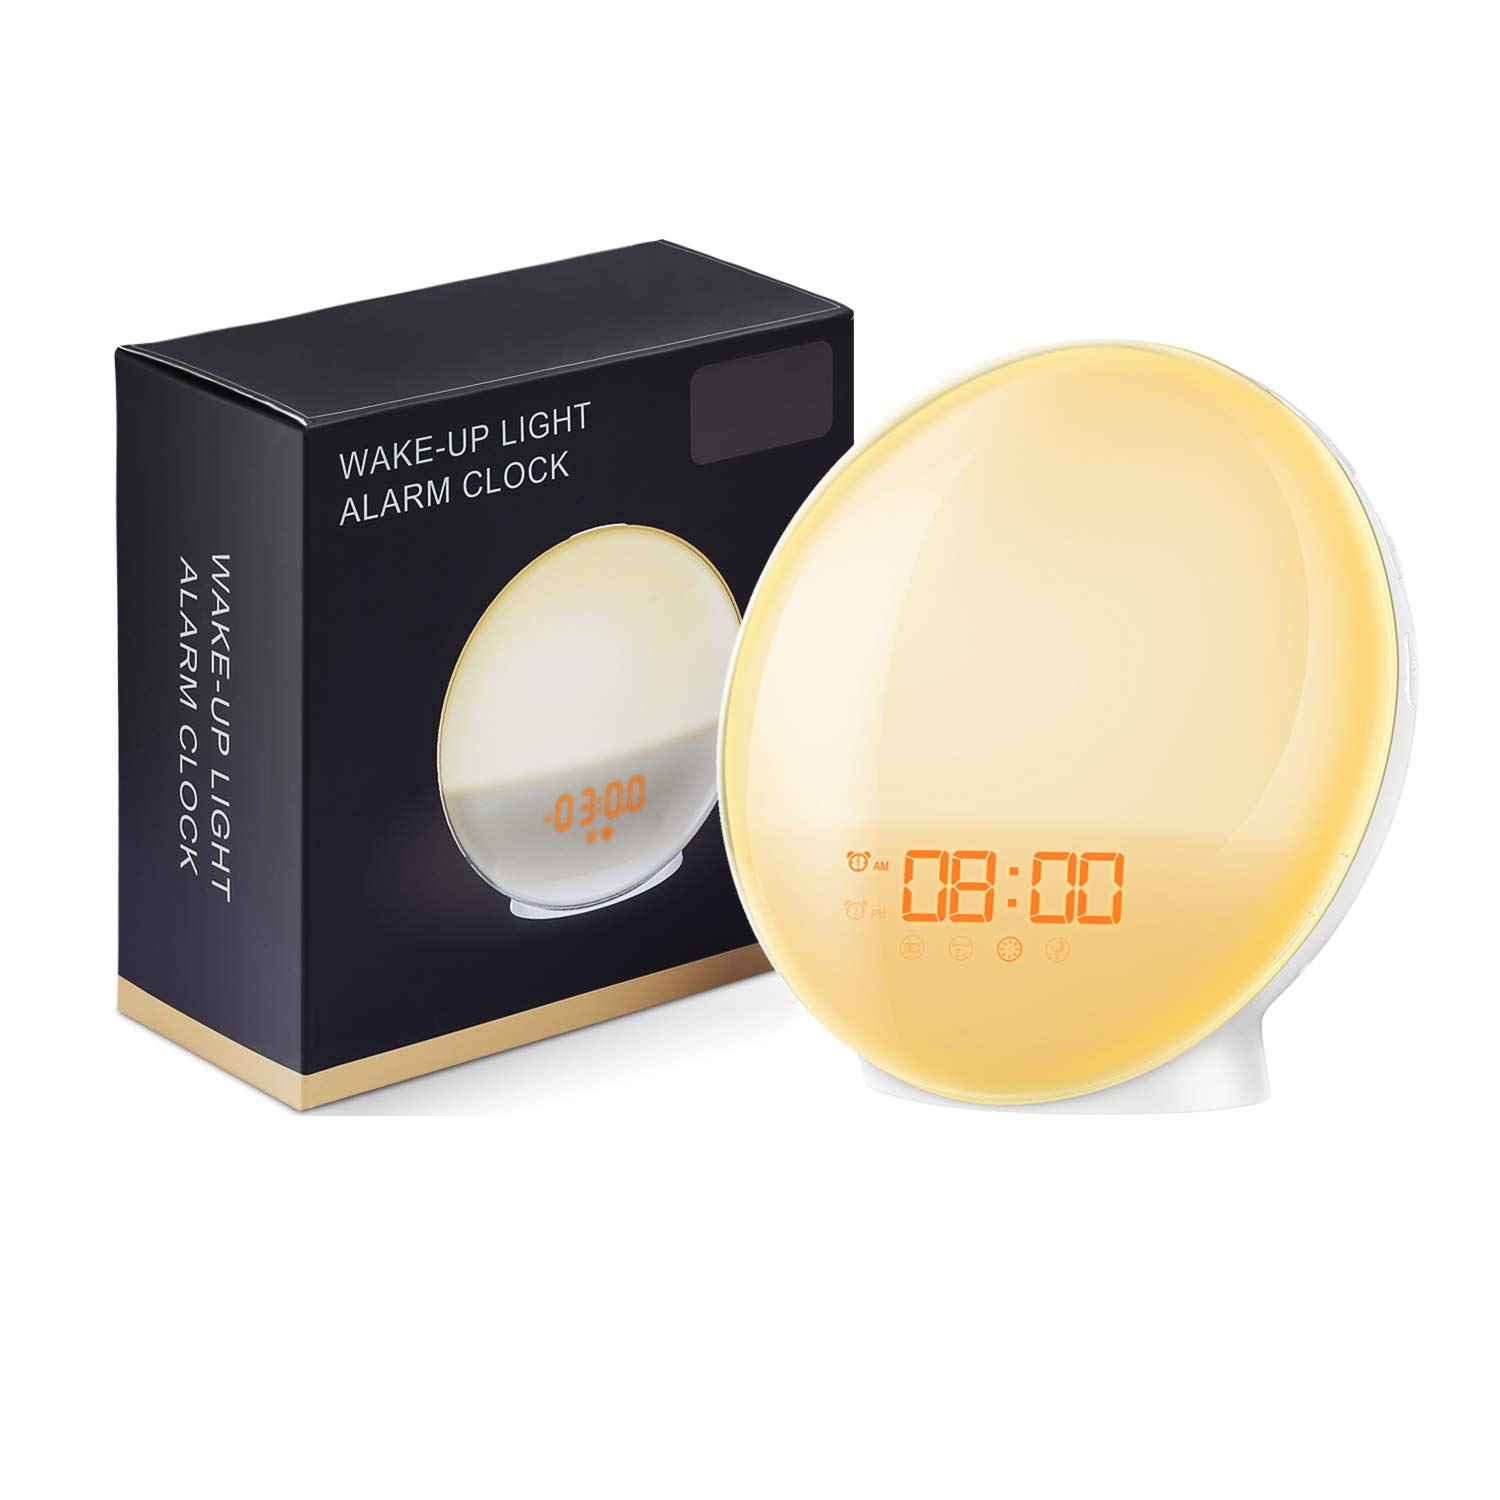 (Upgraded) AMIR Sunrise Alarm Clock, Wake-Up Light, 7 Colors Mood Atmosphere Lamp, Bedside Night Light, Digital Clock, FM Radio, Sunrise/Sunset Simulation for Bedroom, 7 Natural Sounds, Dual Alarms